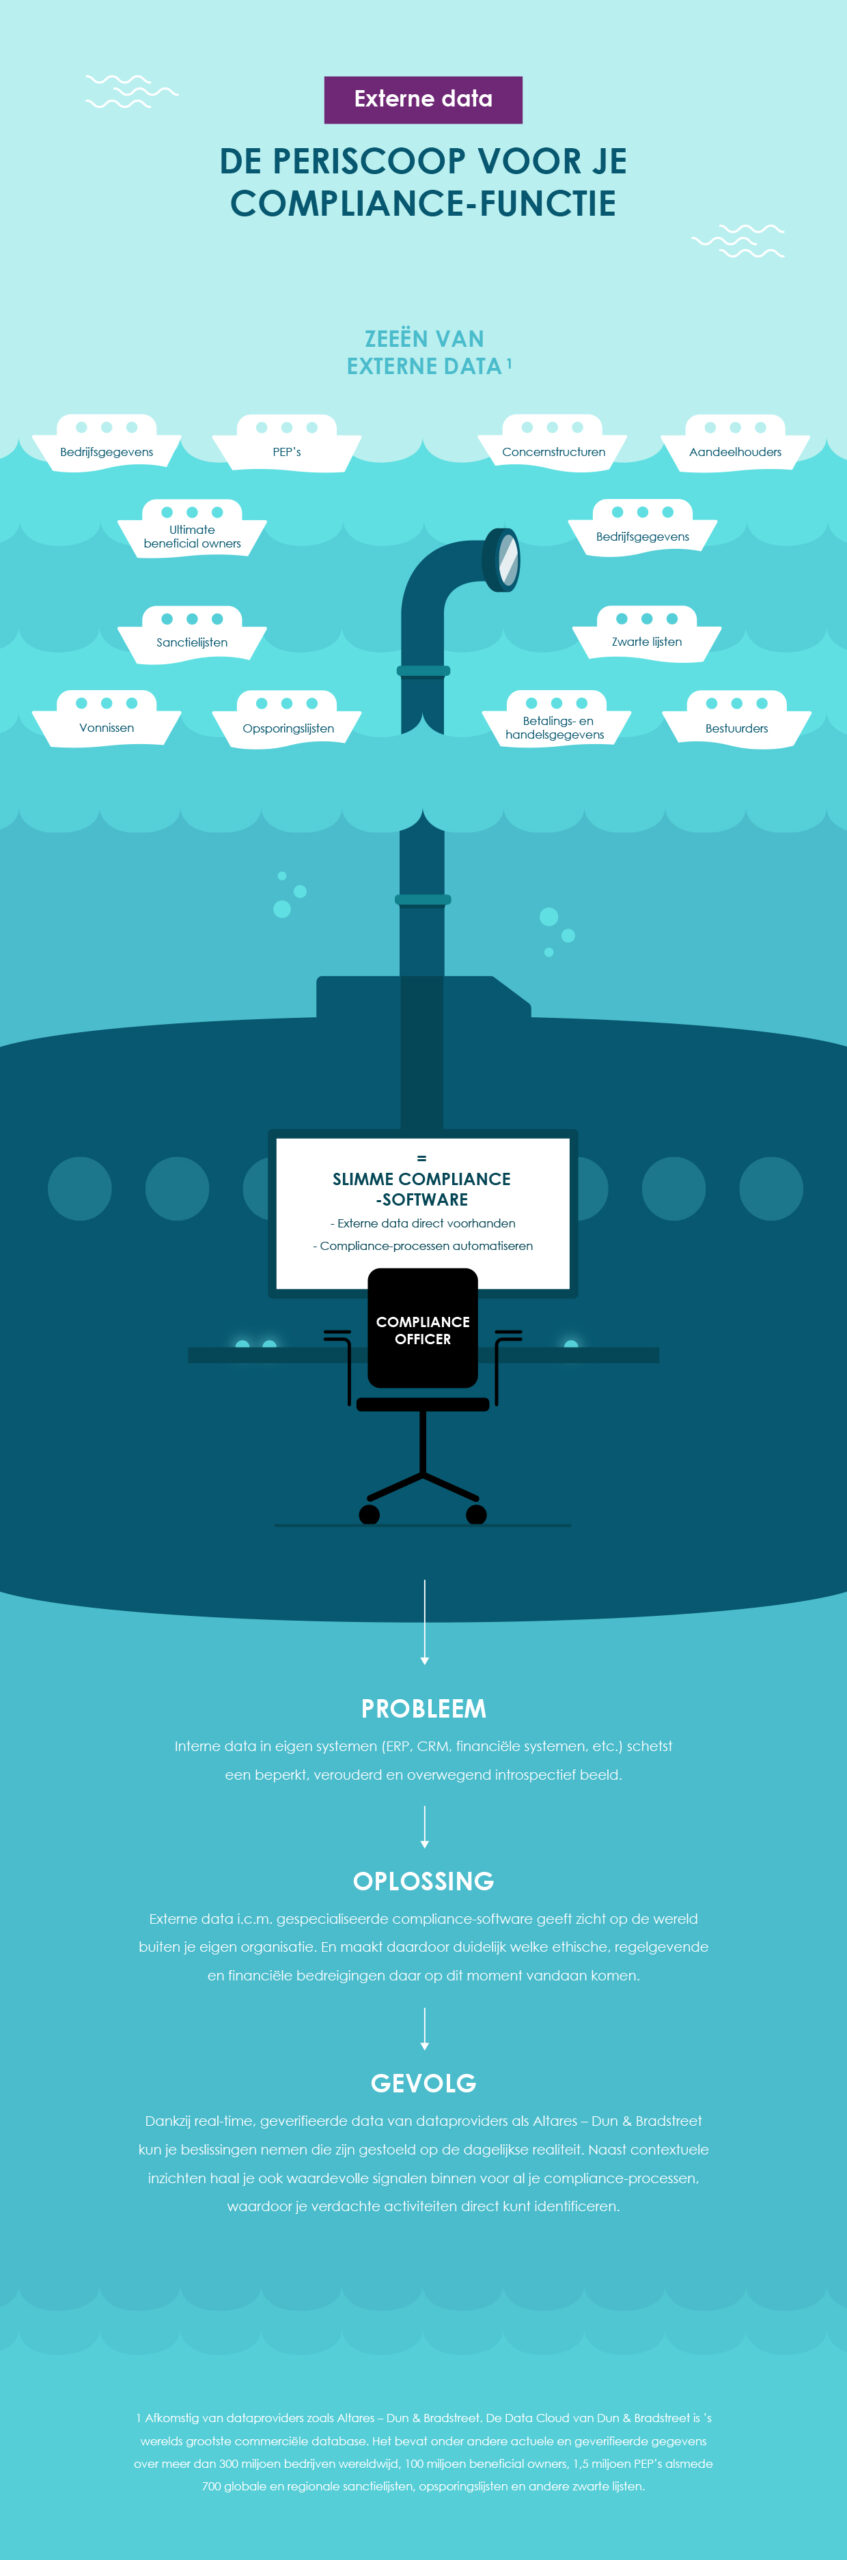 Infographic - External data: The periscope for your compliance function